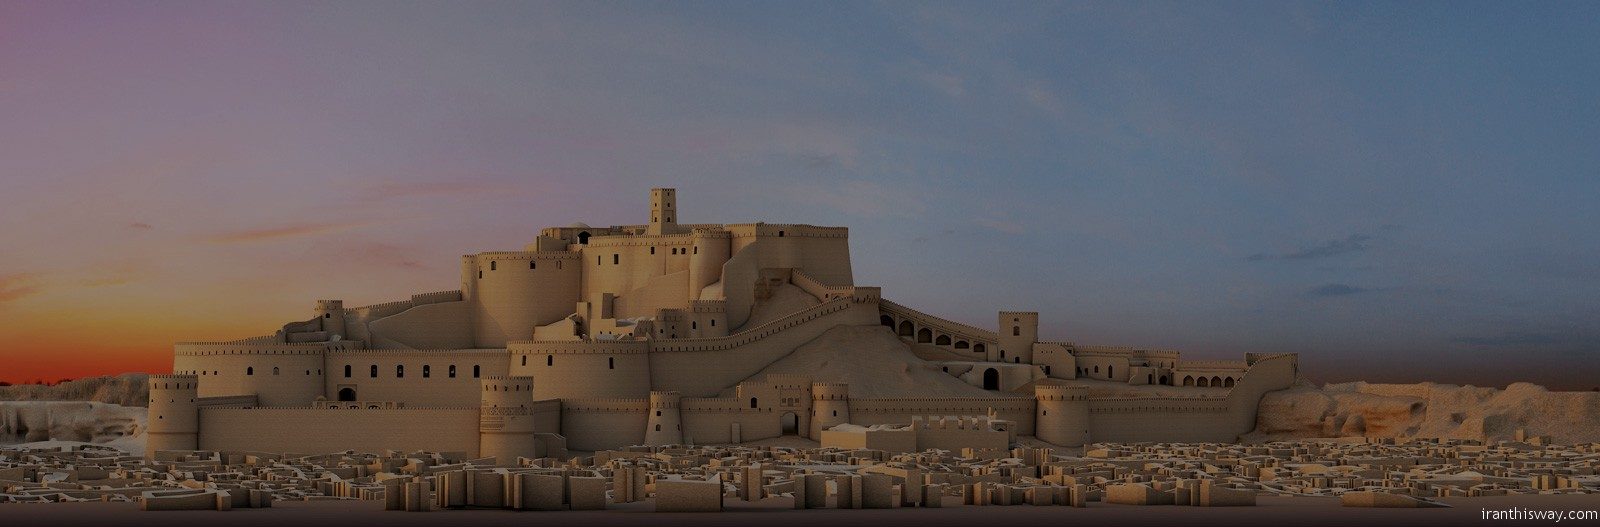 Kerman draws $333m in tourism